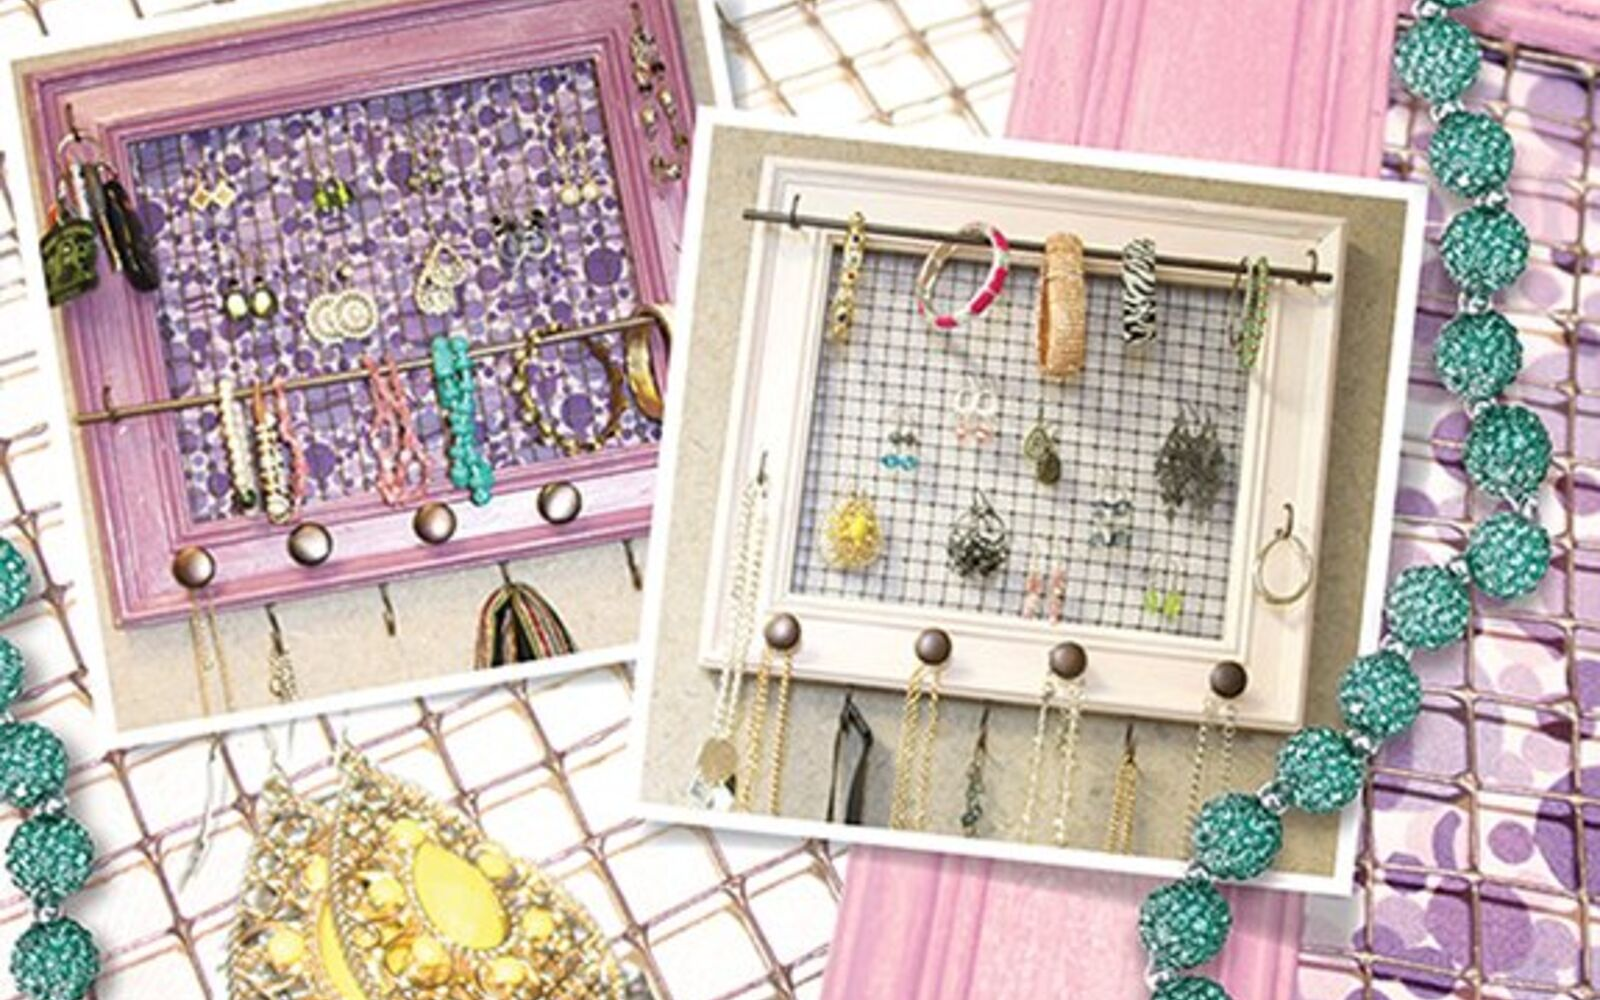 s post, Make A Jewelry Organizer With Chicken Wire